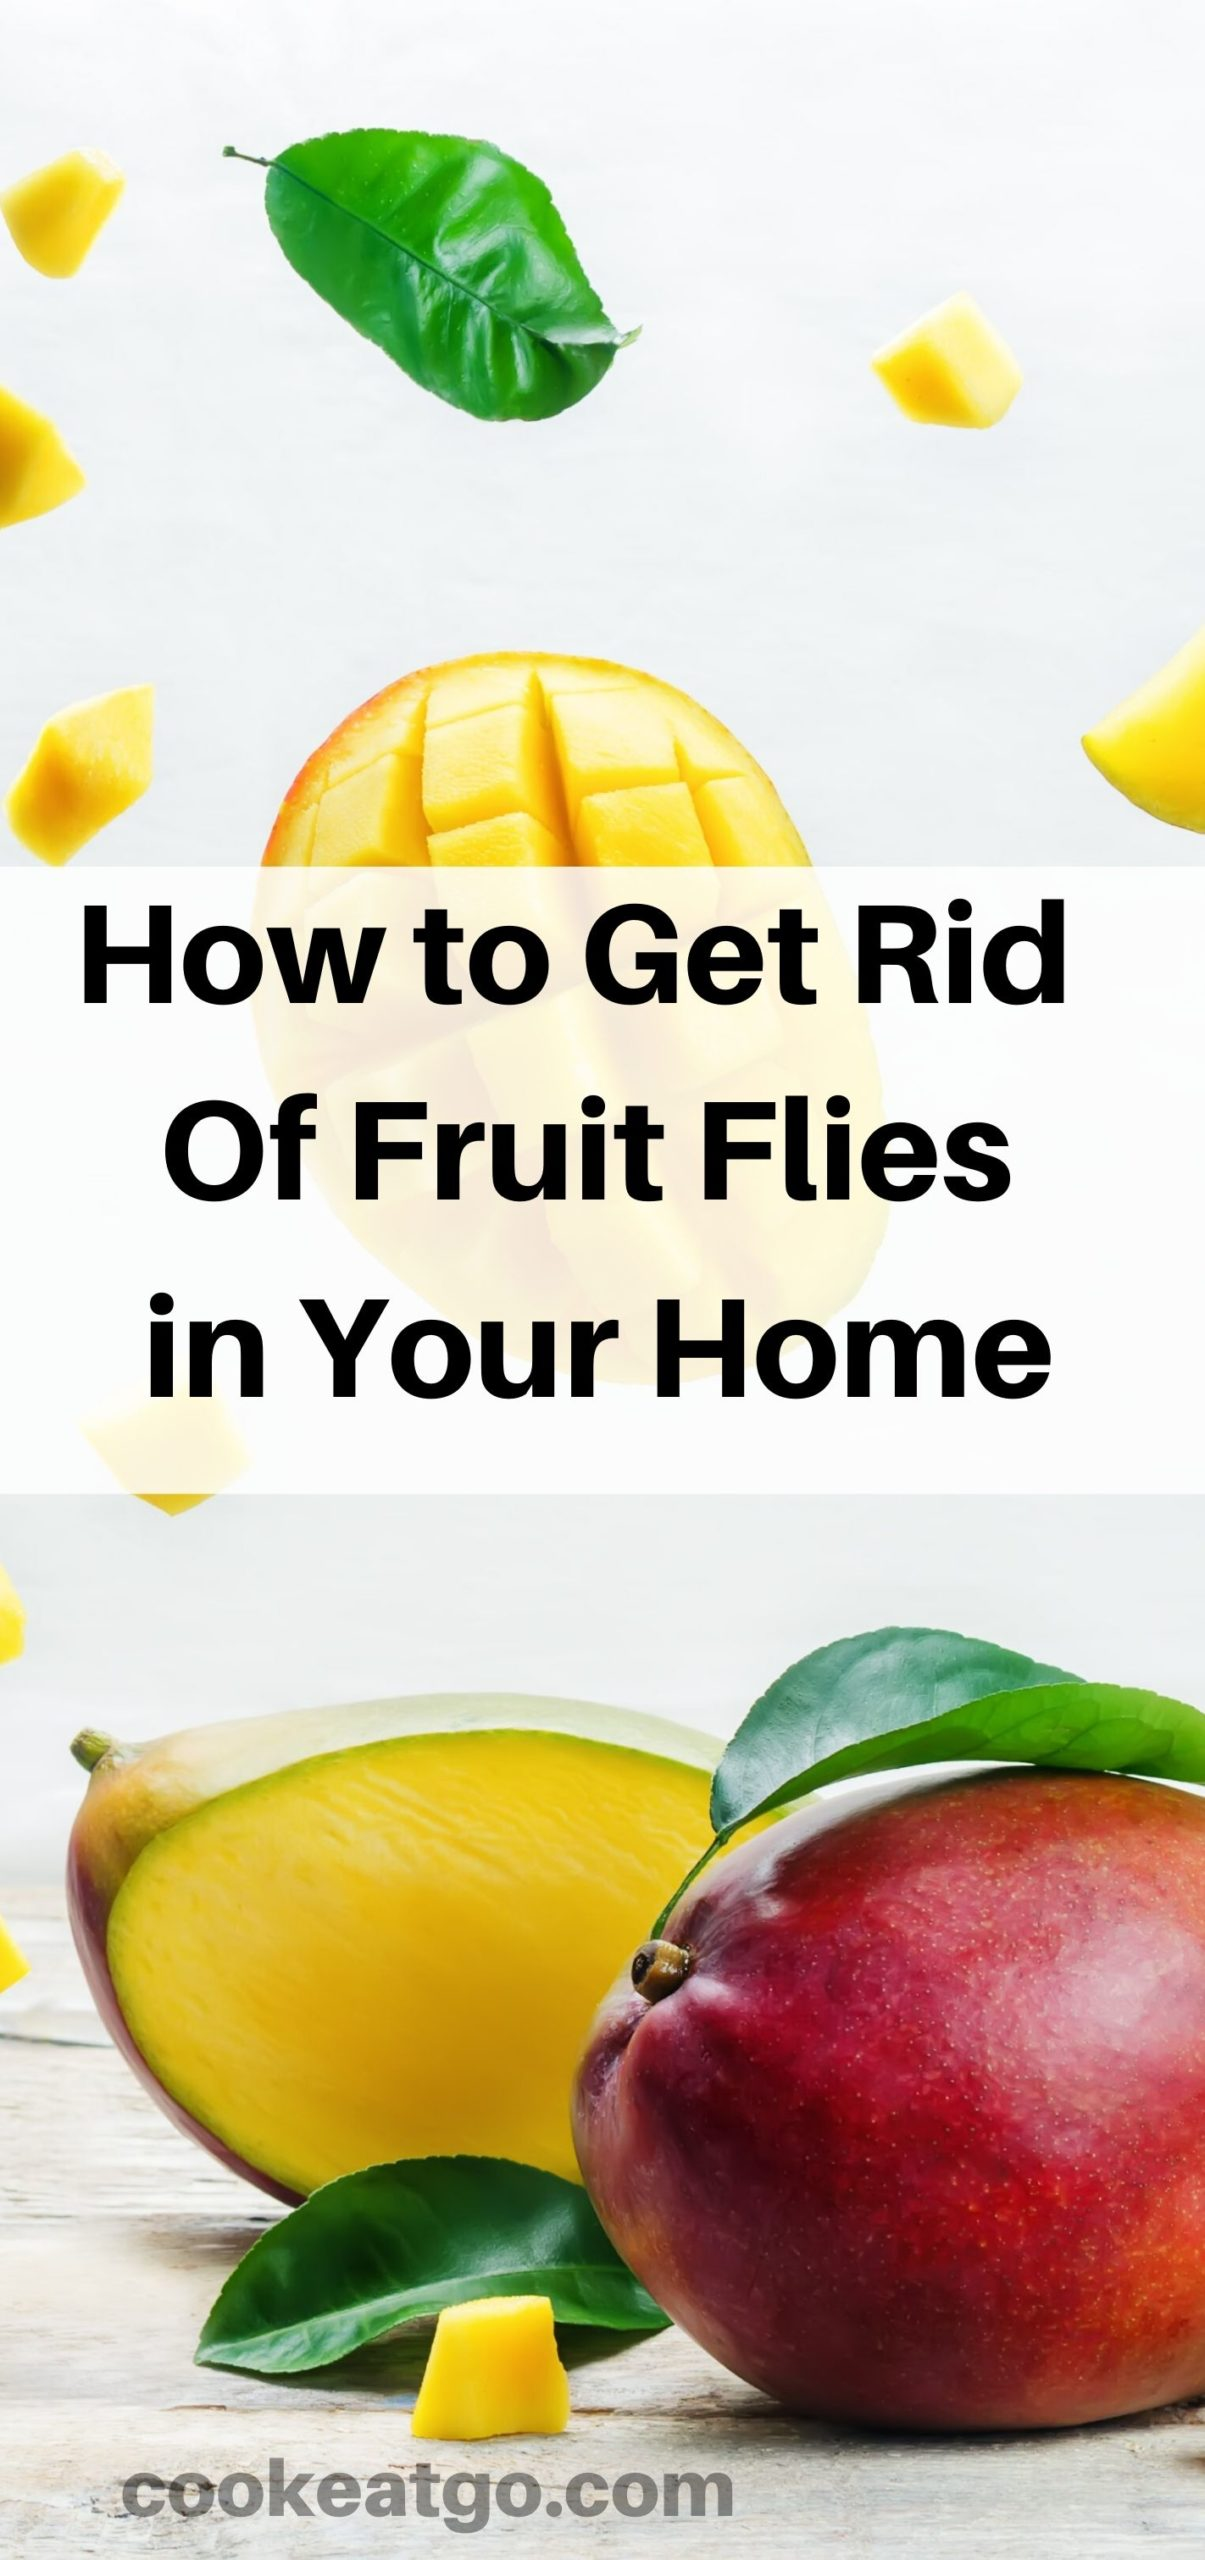 How to Get Rid of Fruit Flies in Your Home!! Thankfully there are a couple of several frugal ways to get rid of them and prevent them as well.